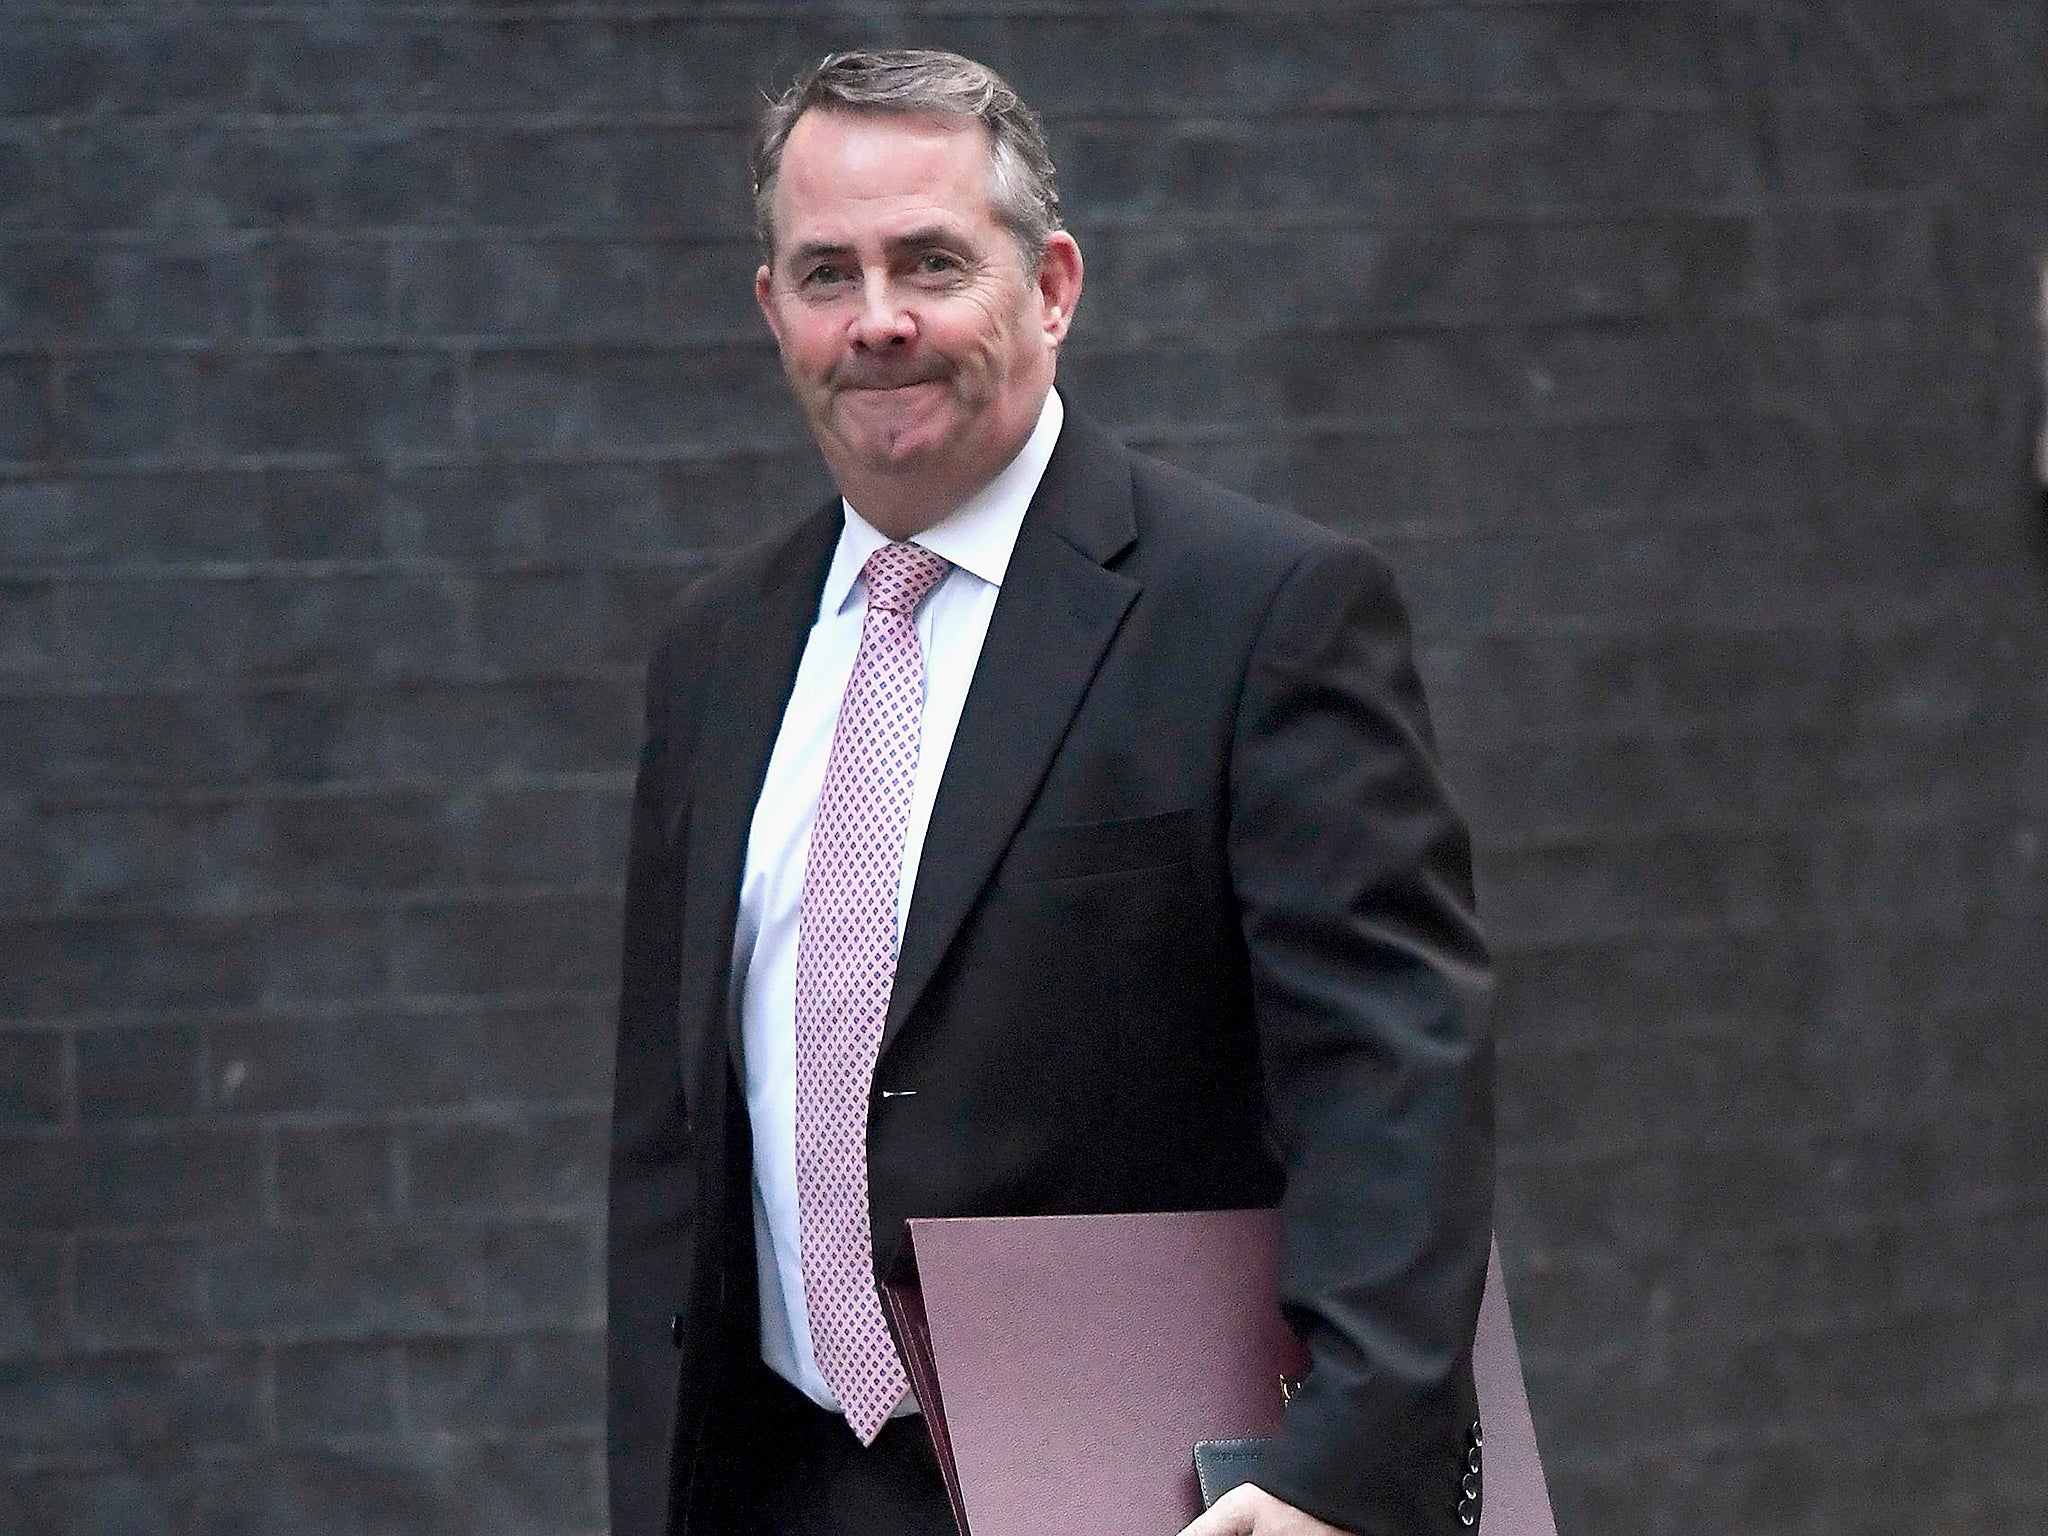 Liam Fox accused of driving Britain to 'economically disastrous' hard Brexit following WTO move